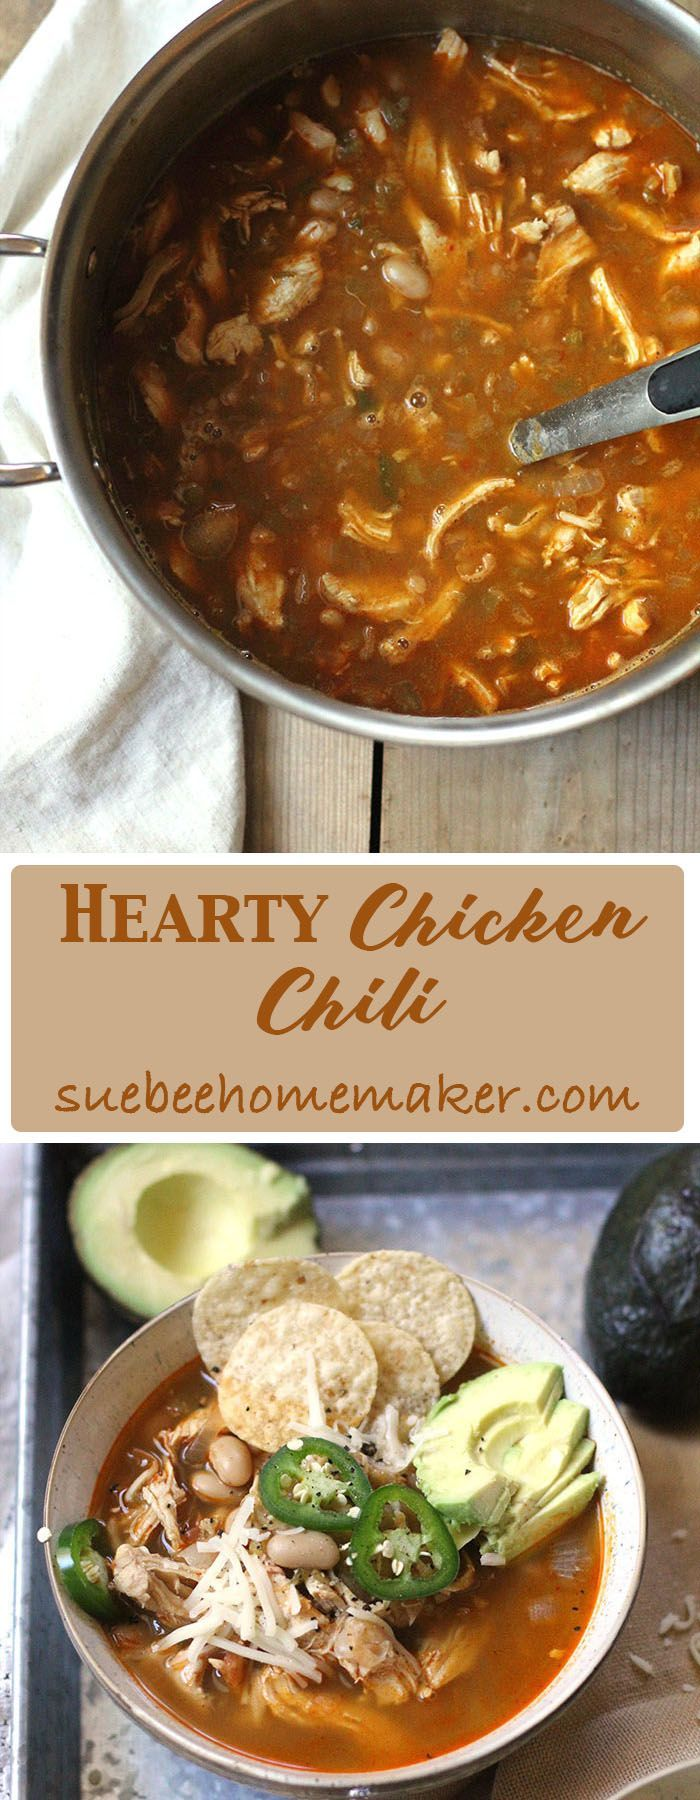 Hearty Chicken Chili will keep you warm and full on chilly days. Full of protein with plenty of chicken and white beans, this chili also has some spice. Tailor it to your taste buds! | suebeehomemaker.com